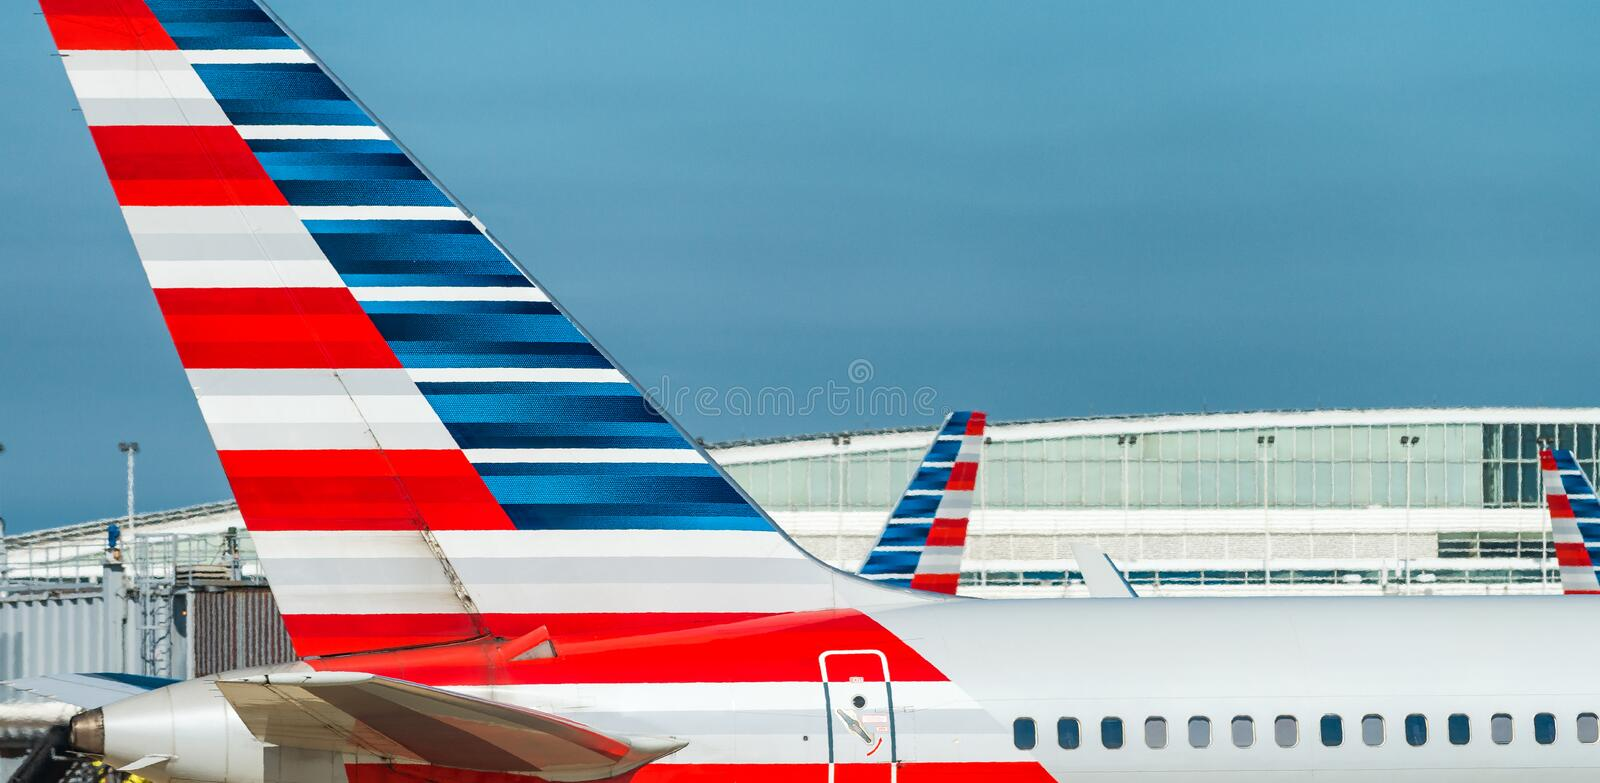 CHICAGO, IL - 27 JULI, 2017: American Airlines-vliegtuig op airp royalty-vrije stock fotografie